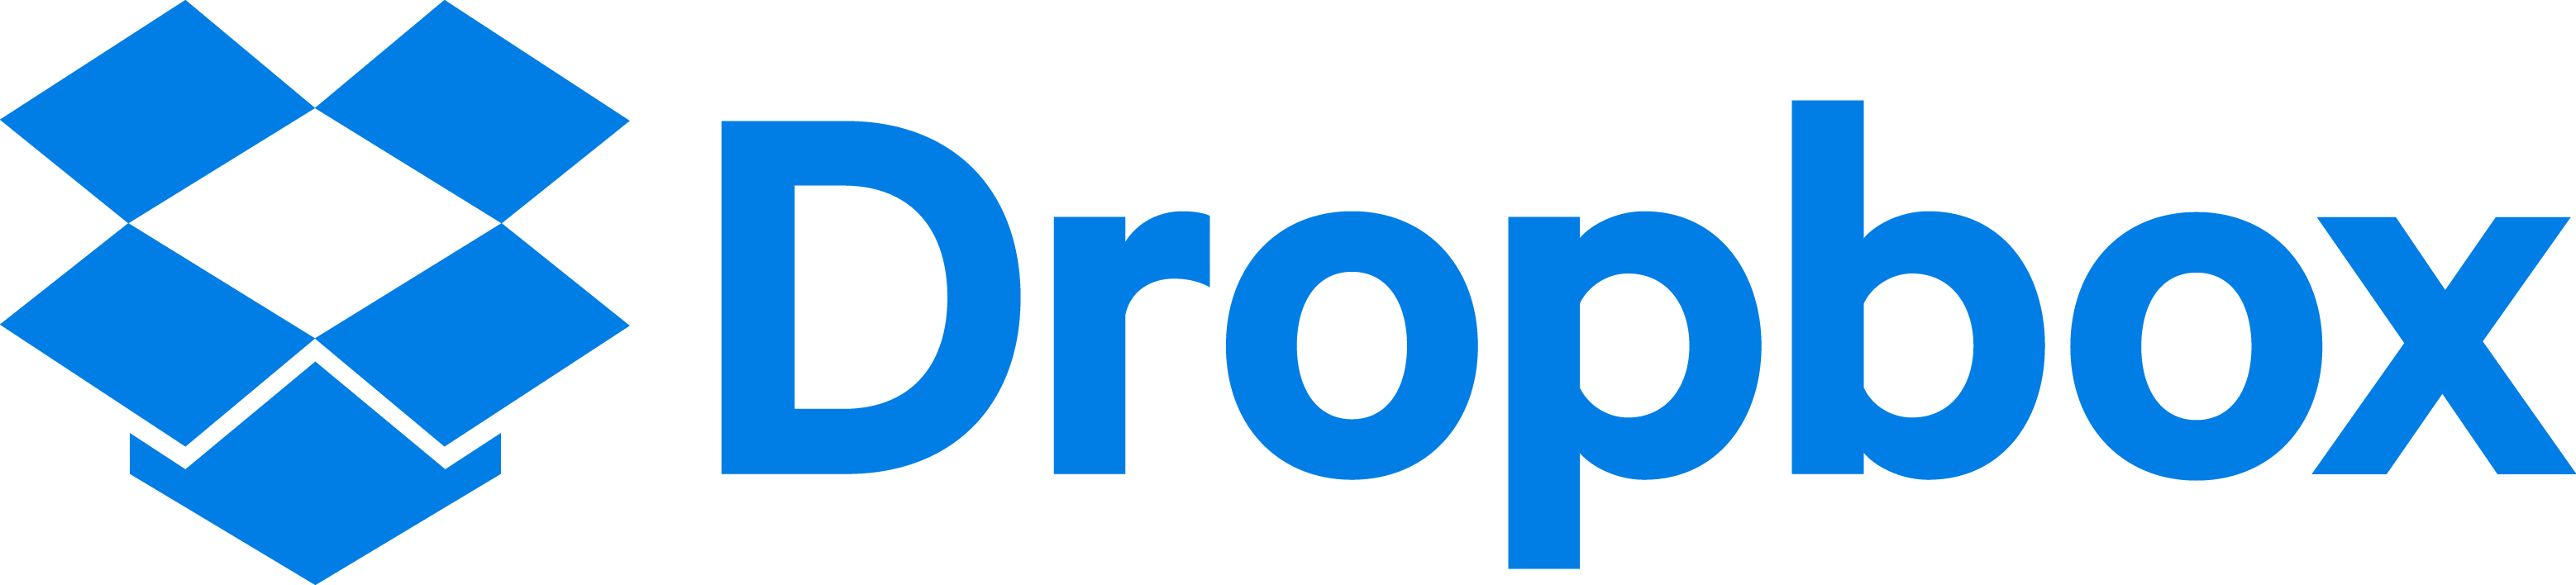 Dropbox Logo [EPS File] png